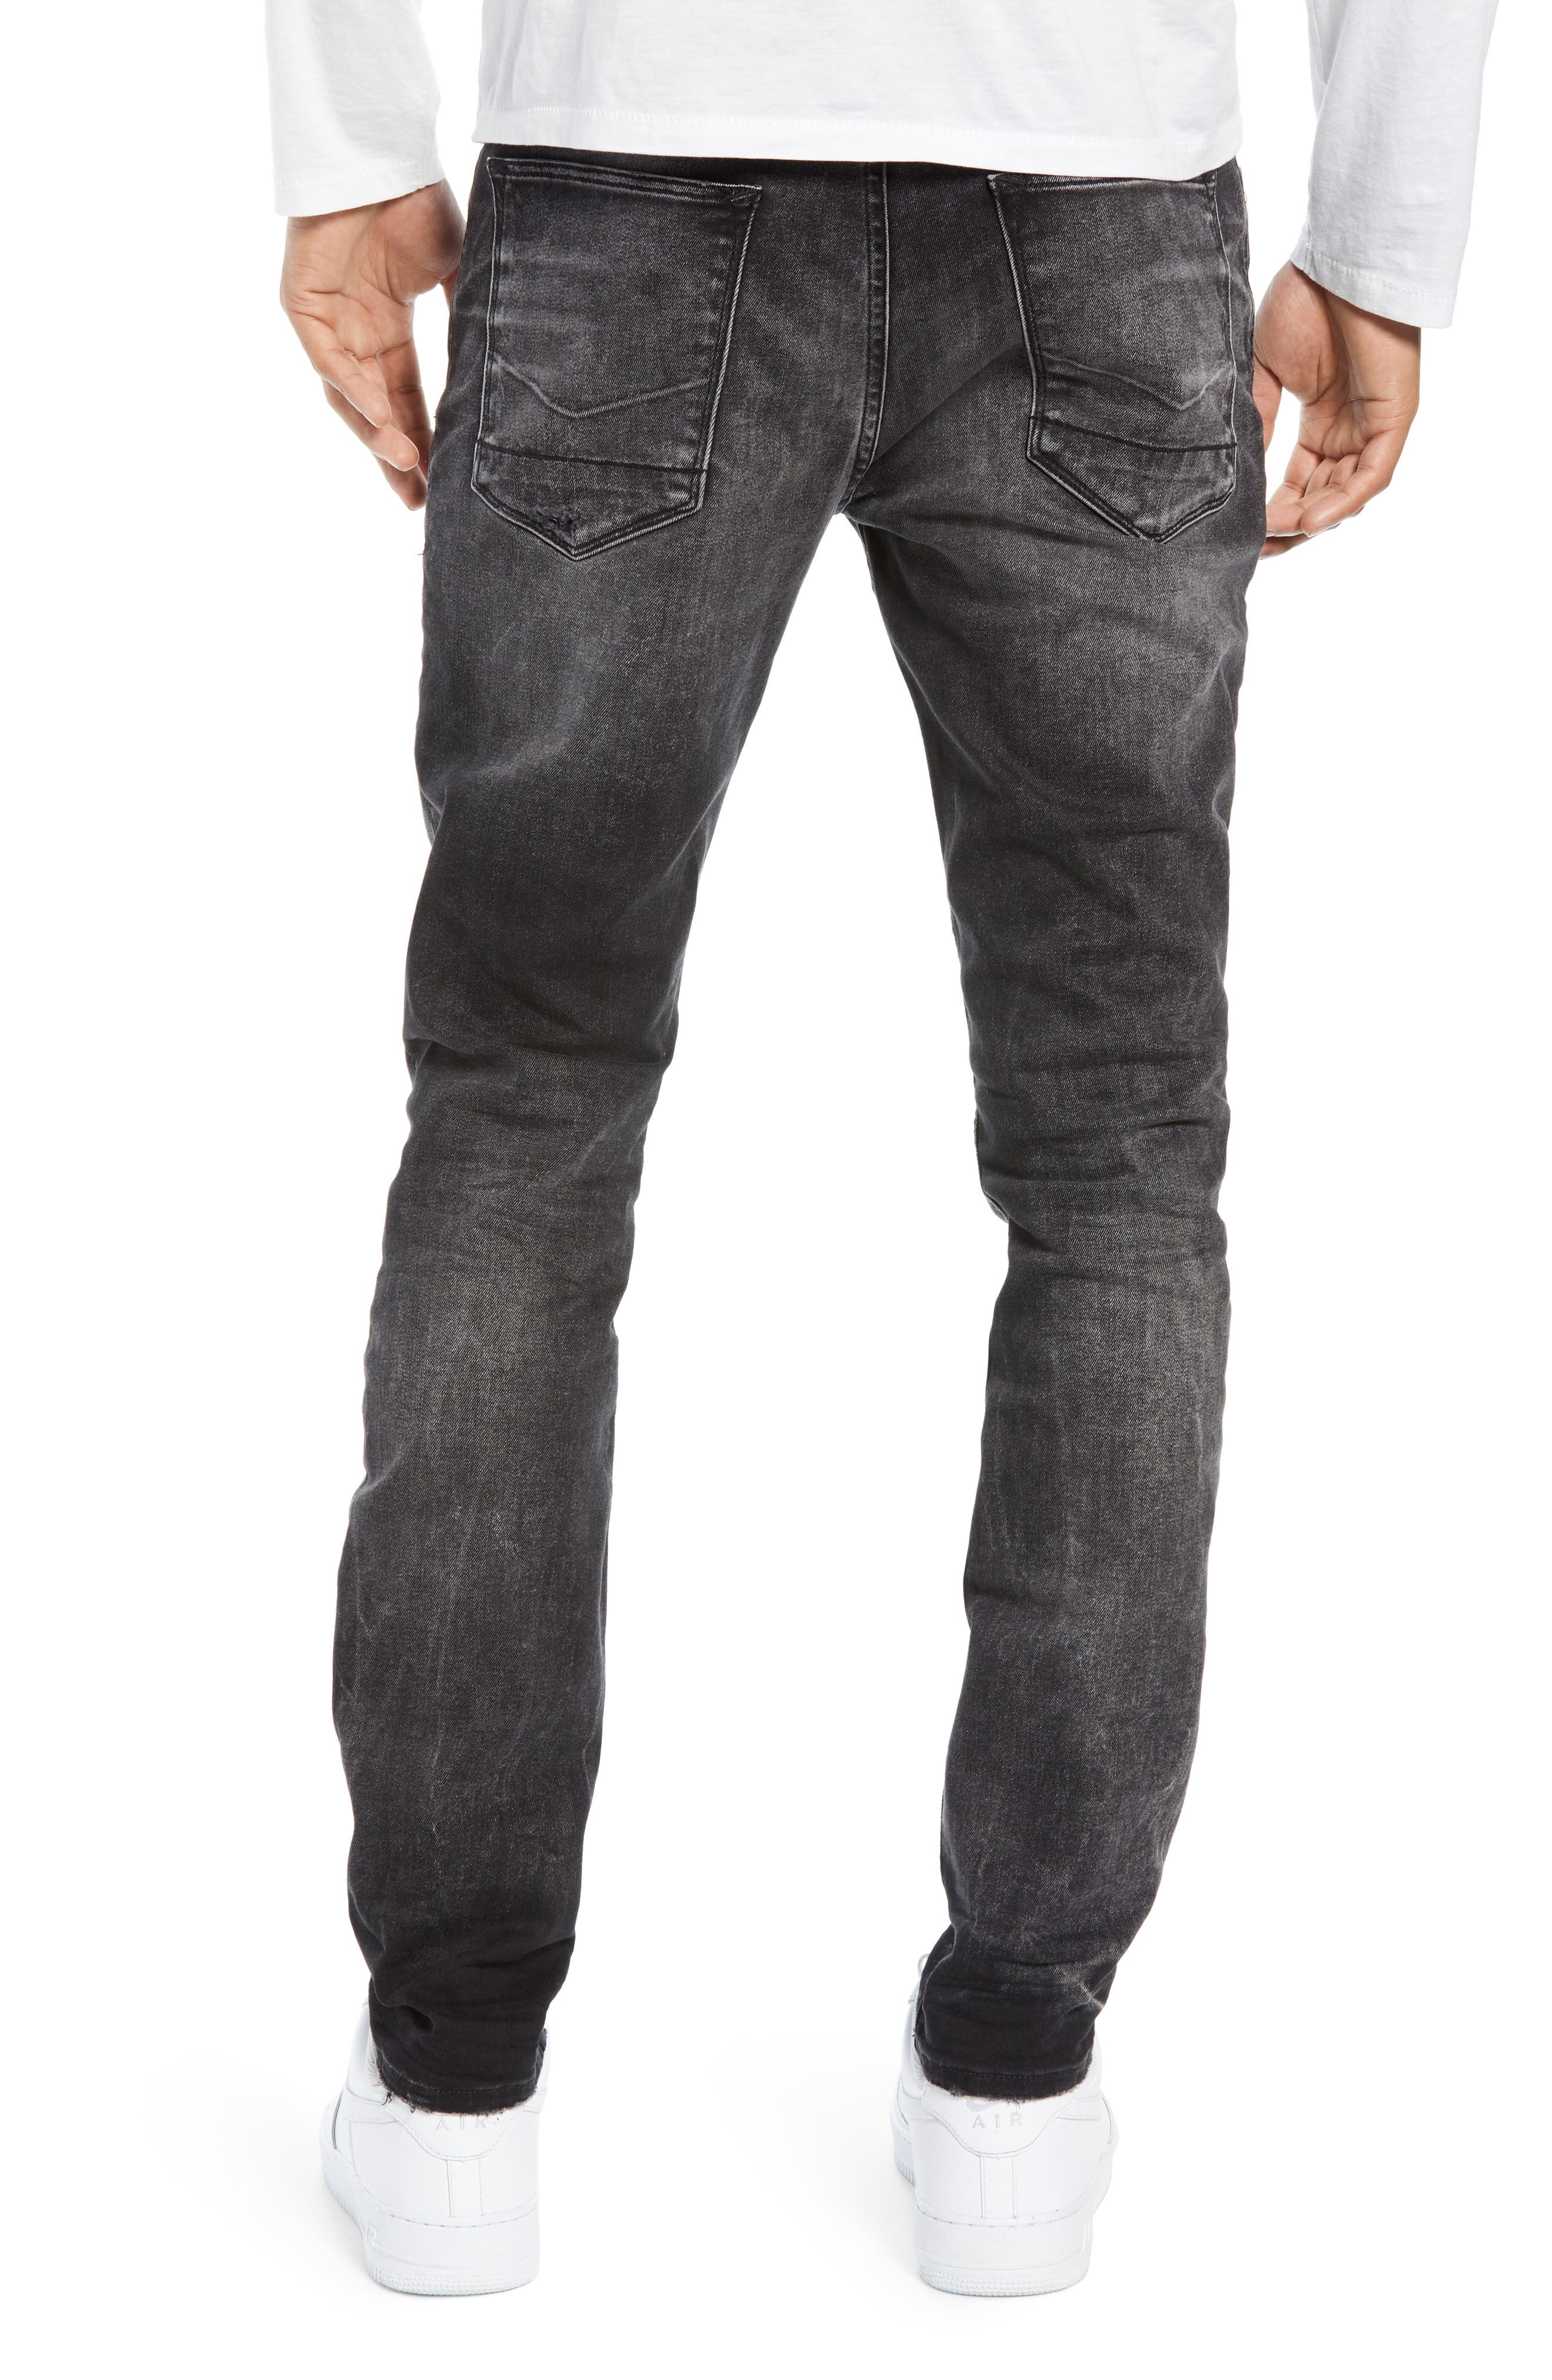 HUDSON JEANS,                             Axl Skinny Fit Jeans,                             Alternate thumbnail 2, color,                             DELUXE